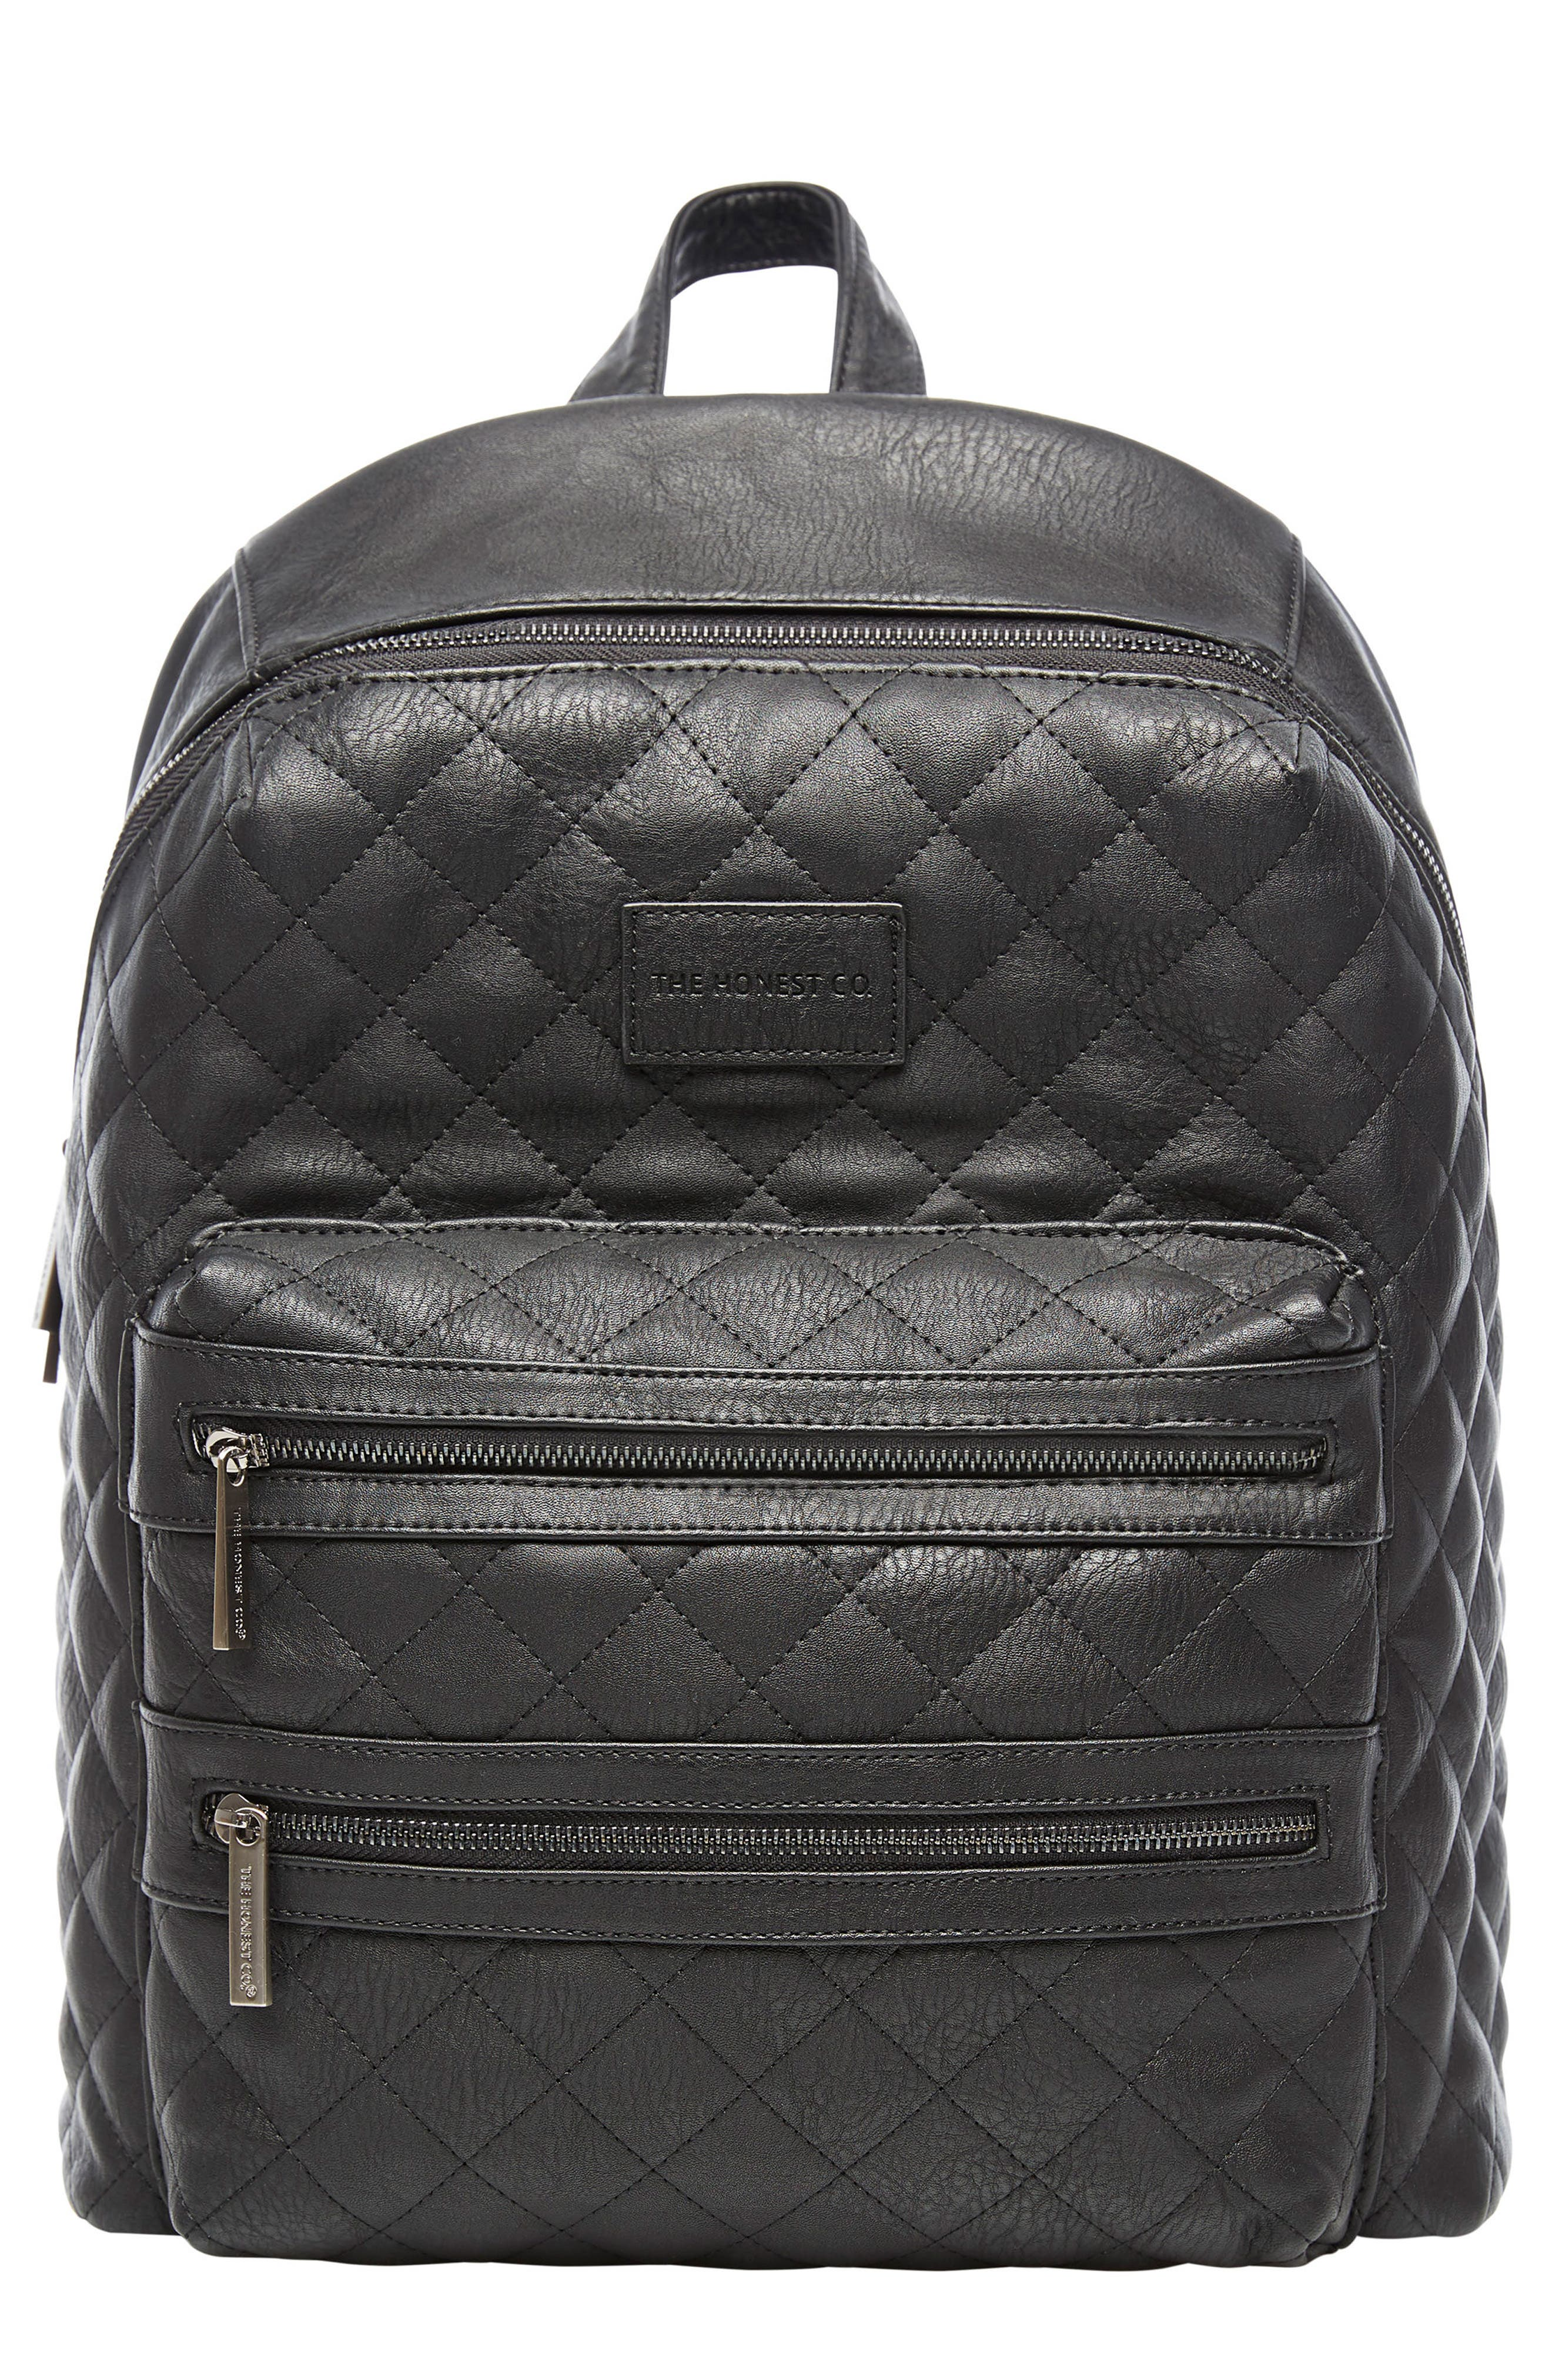 City Quilted Faux Leather Diaper Backpack,                             Main thumbnail 1, color,                             001